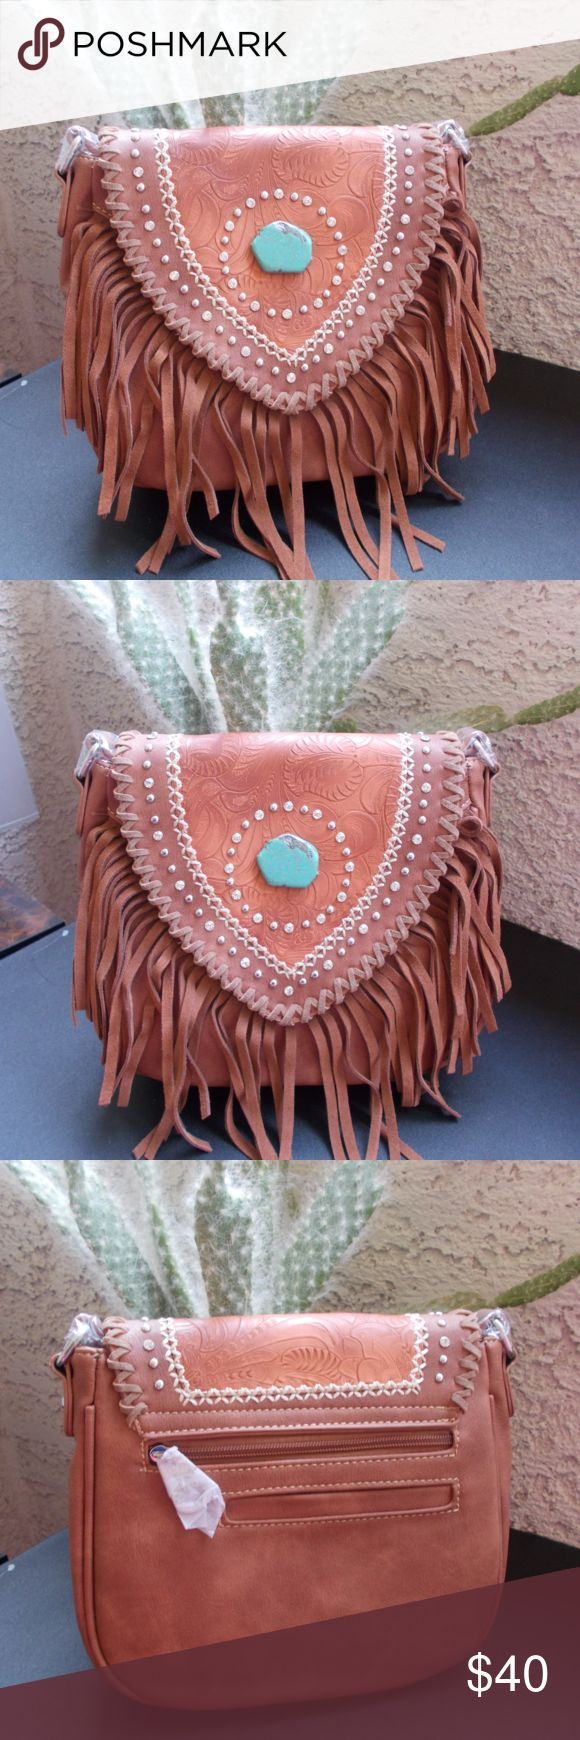 NEW Montana West Brown Fringe Crossbody Bag Made of PU leather, this crossbody bag has: Tooling on the flap with saddle stitch, silver studs and rhinestones Accented with a turquoise stone Leather fringe on the front A zipper enclosure on top of the bag Inside single compartment divided by a medium zippered pocket Inside of bag include a zippered pocket and 2 open pockets A zippered and a open pocket on the back Metal feet on the bottom for protection and stability A crossbody adjustable…